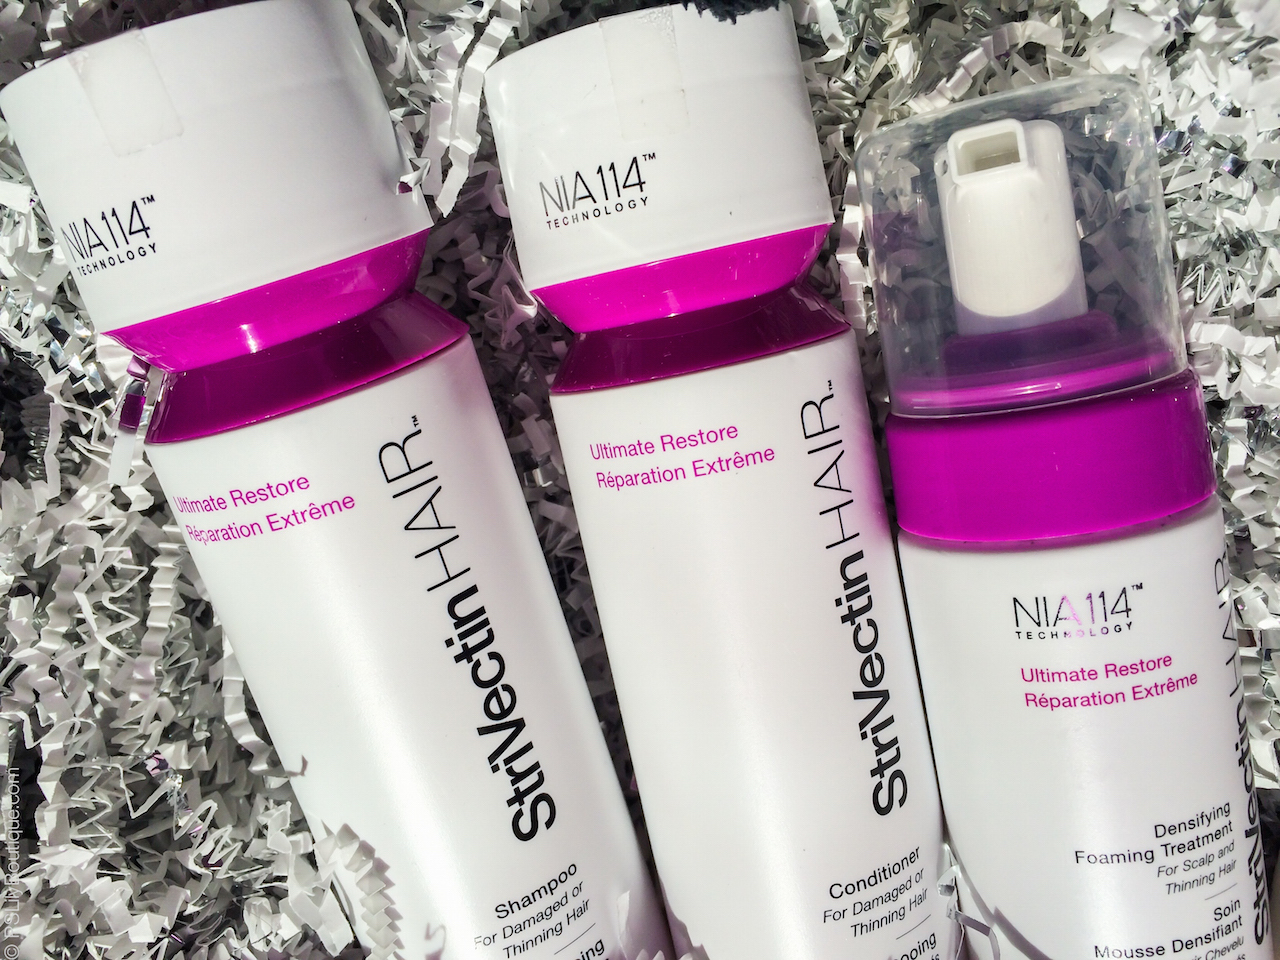 instagram-pslilyboutique-fashion-blog-with-strivectin-restore-hair-loss-beauty-hair-care-lifestyle-travel-blog-10-10-16